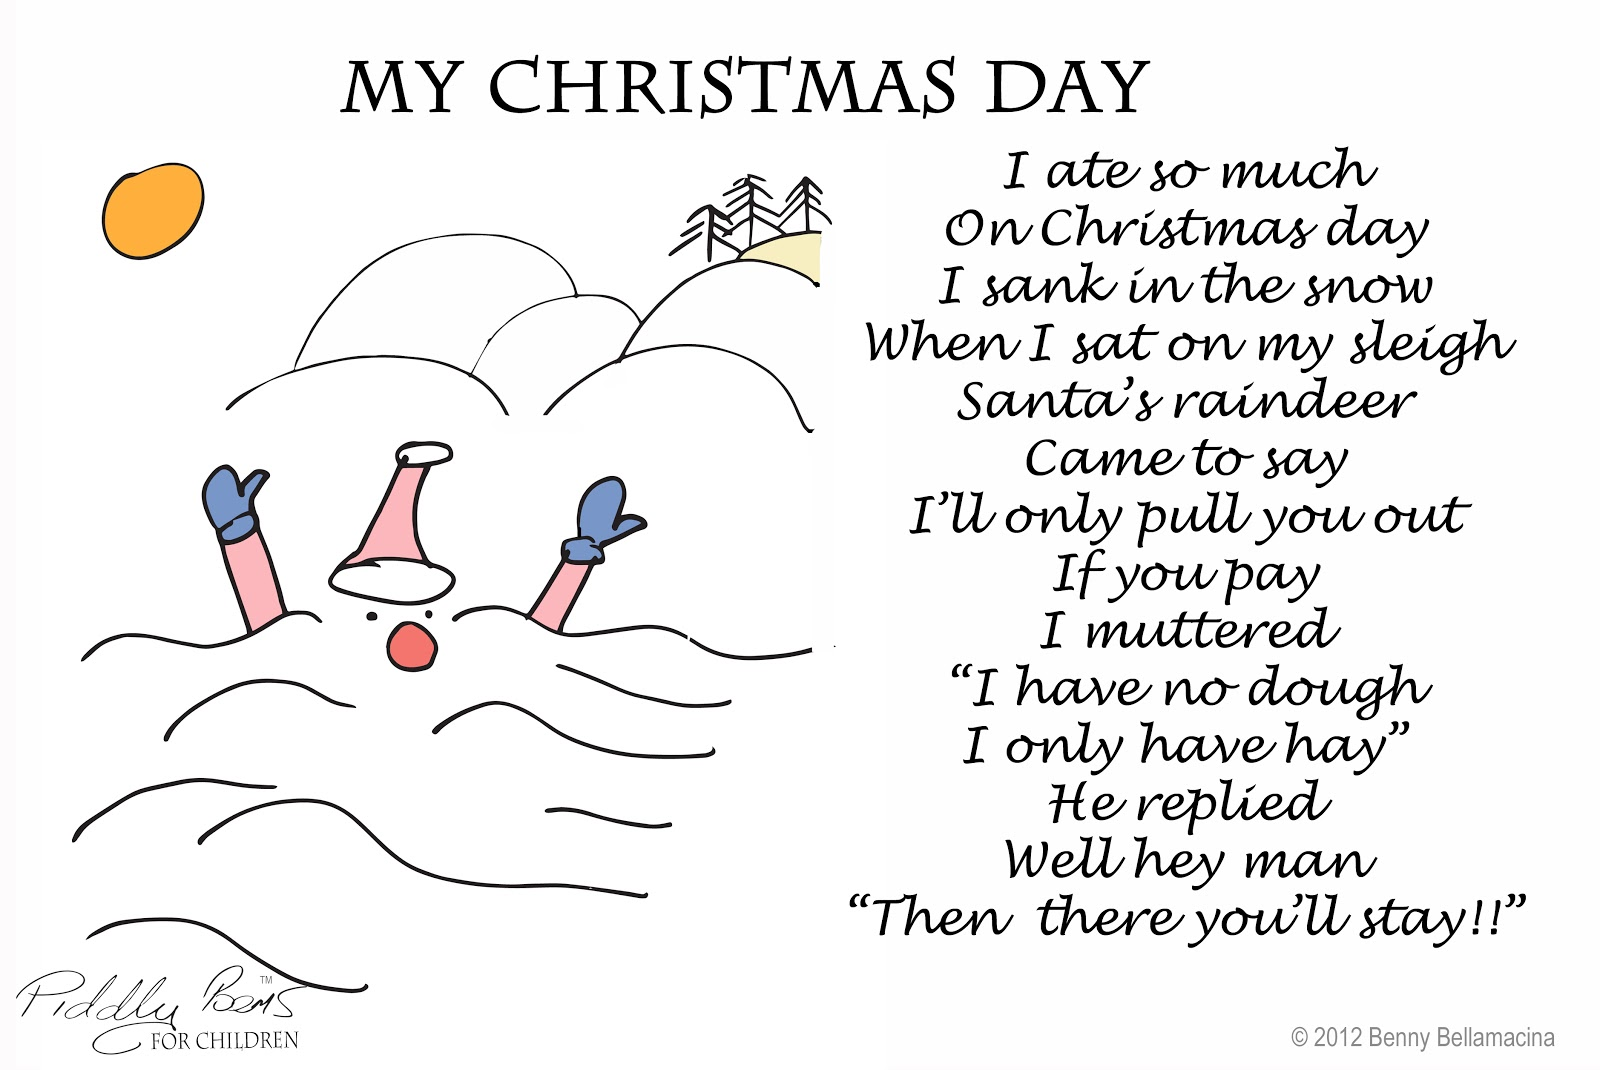 Piddly poems: My Christmas day